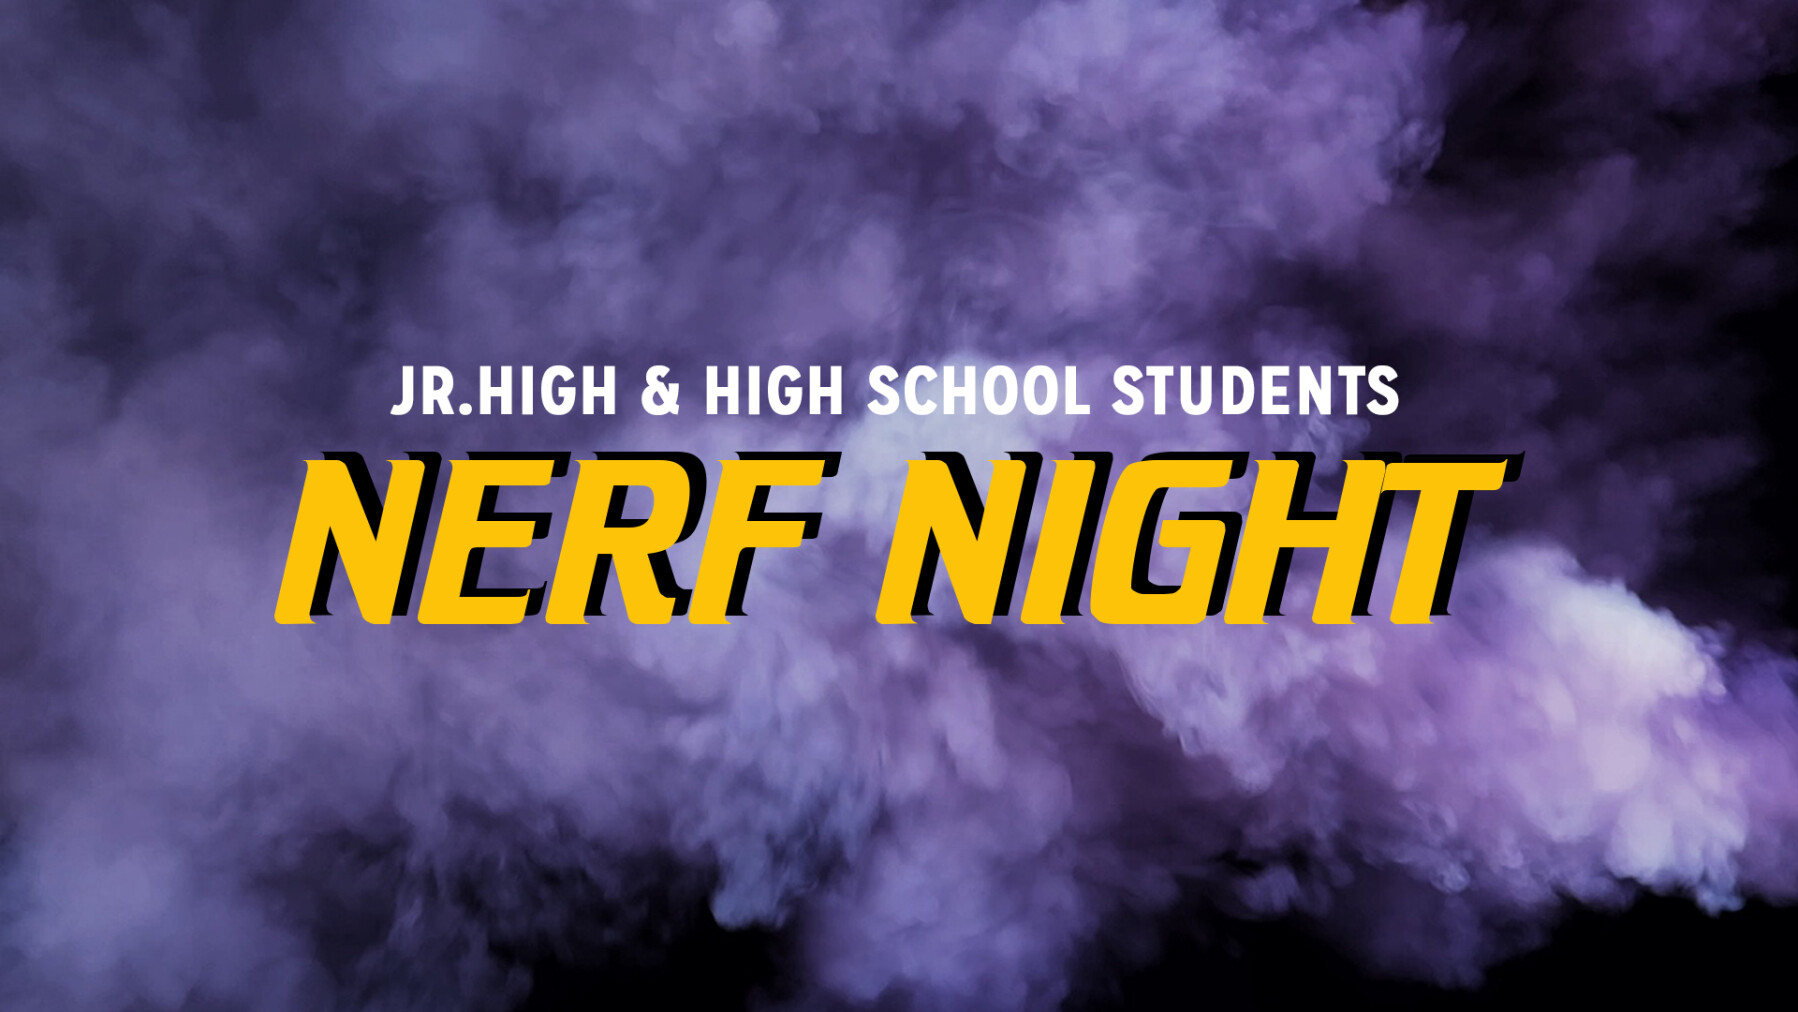 Students Nerf Night